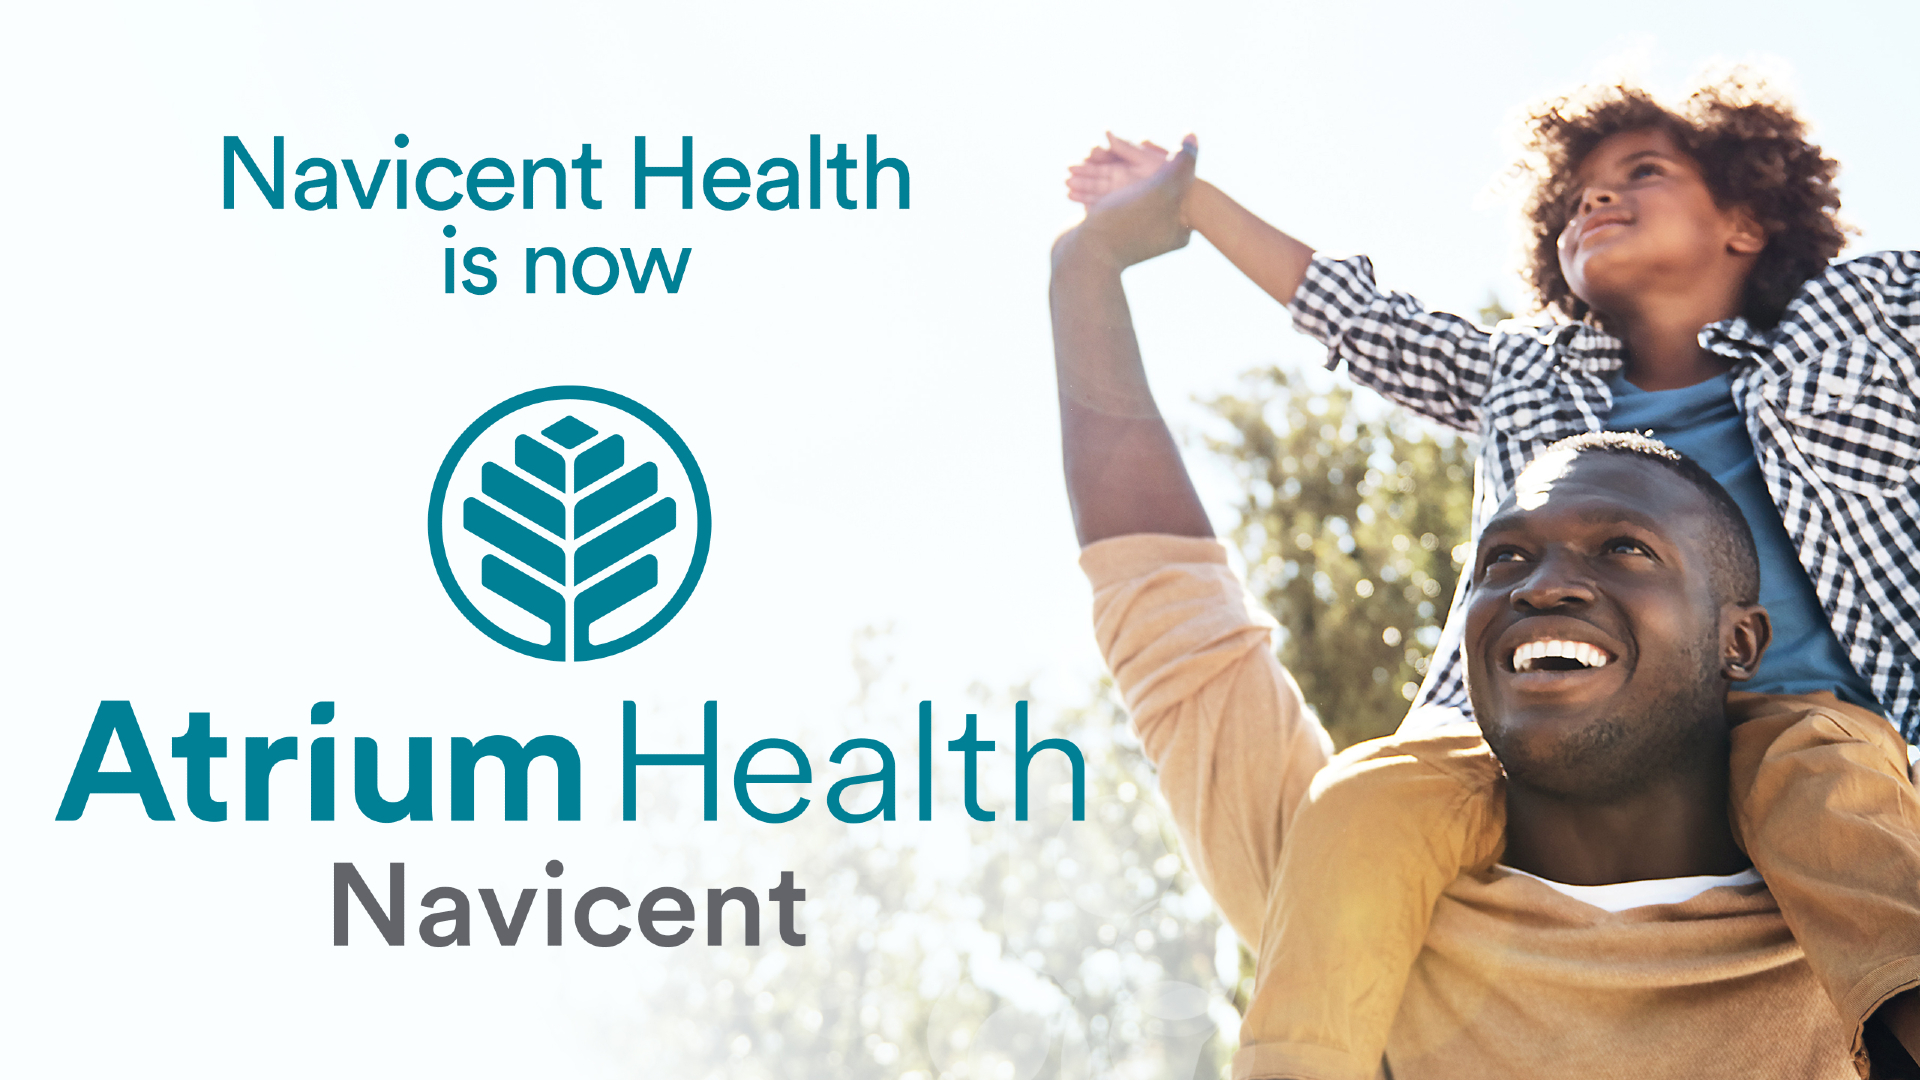 Navicent Health, in collaboration with Charlotte, North Carolina-based Atrium Health, today announced its new brand identity. The Georgia health system, which includes the state's second largest hospital and more than 30 additional facilities, will now be known as Atrium Health Navicent. The new brand symbolizes the strategic partners' shared mission to improve health, elevate hope and advance healing for all.